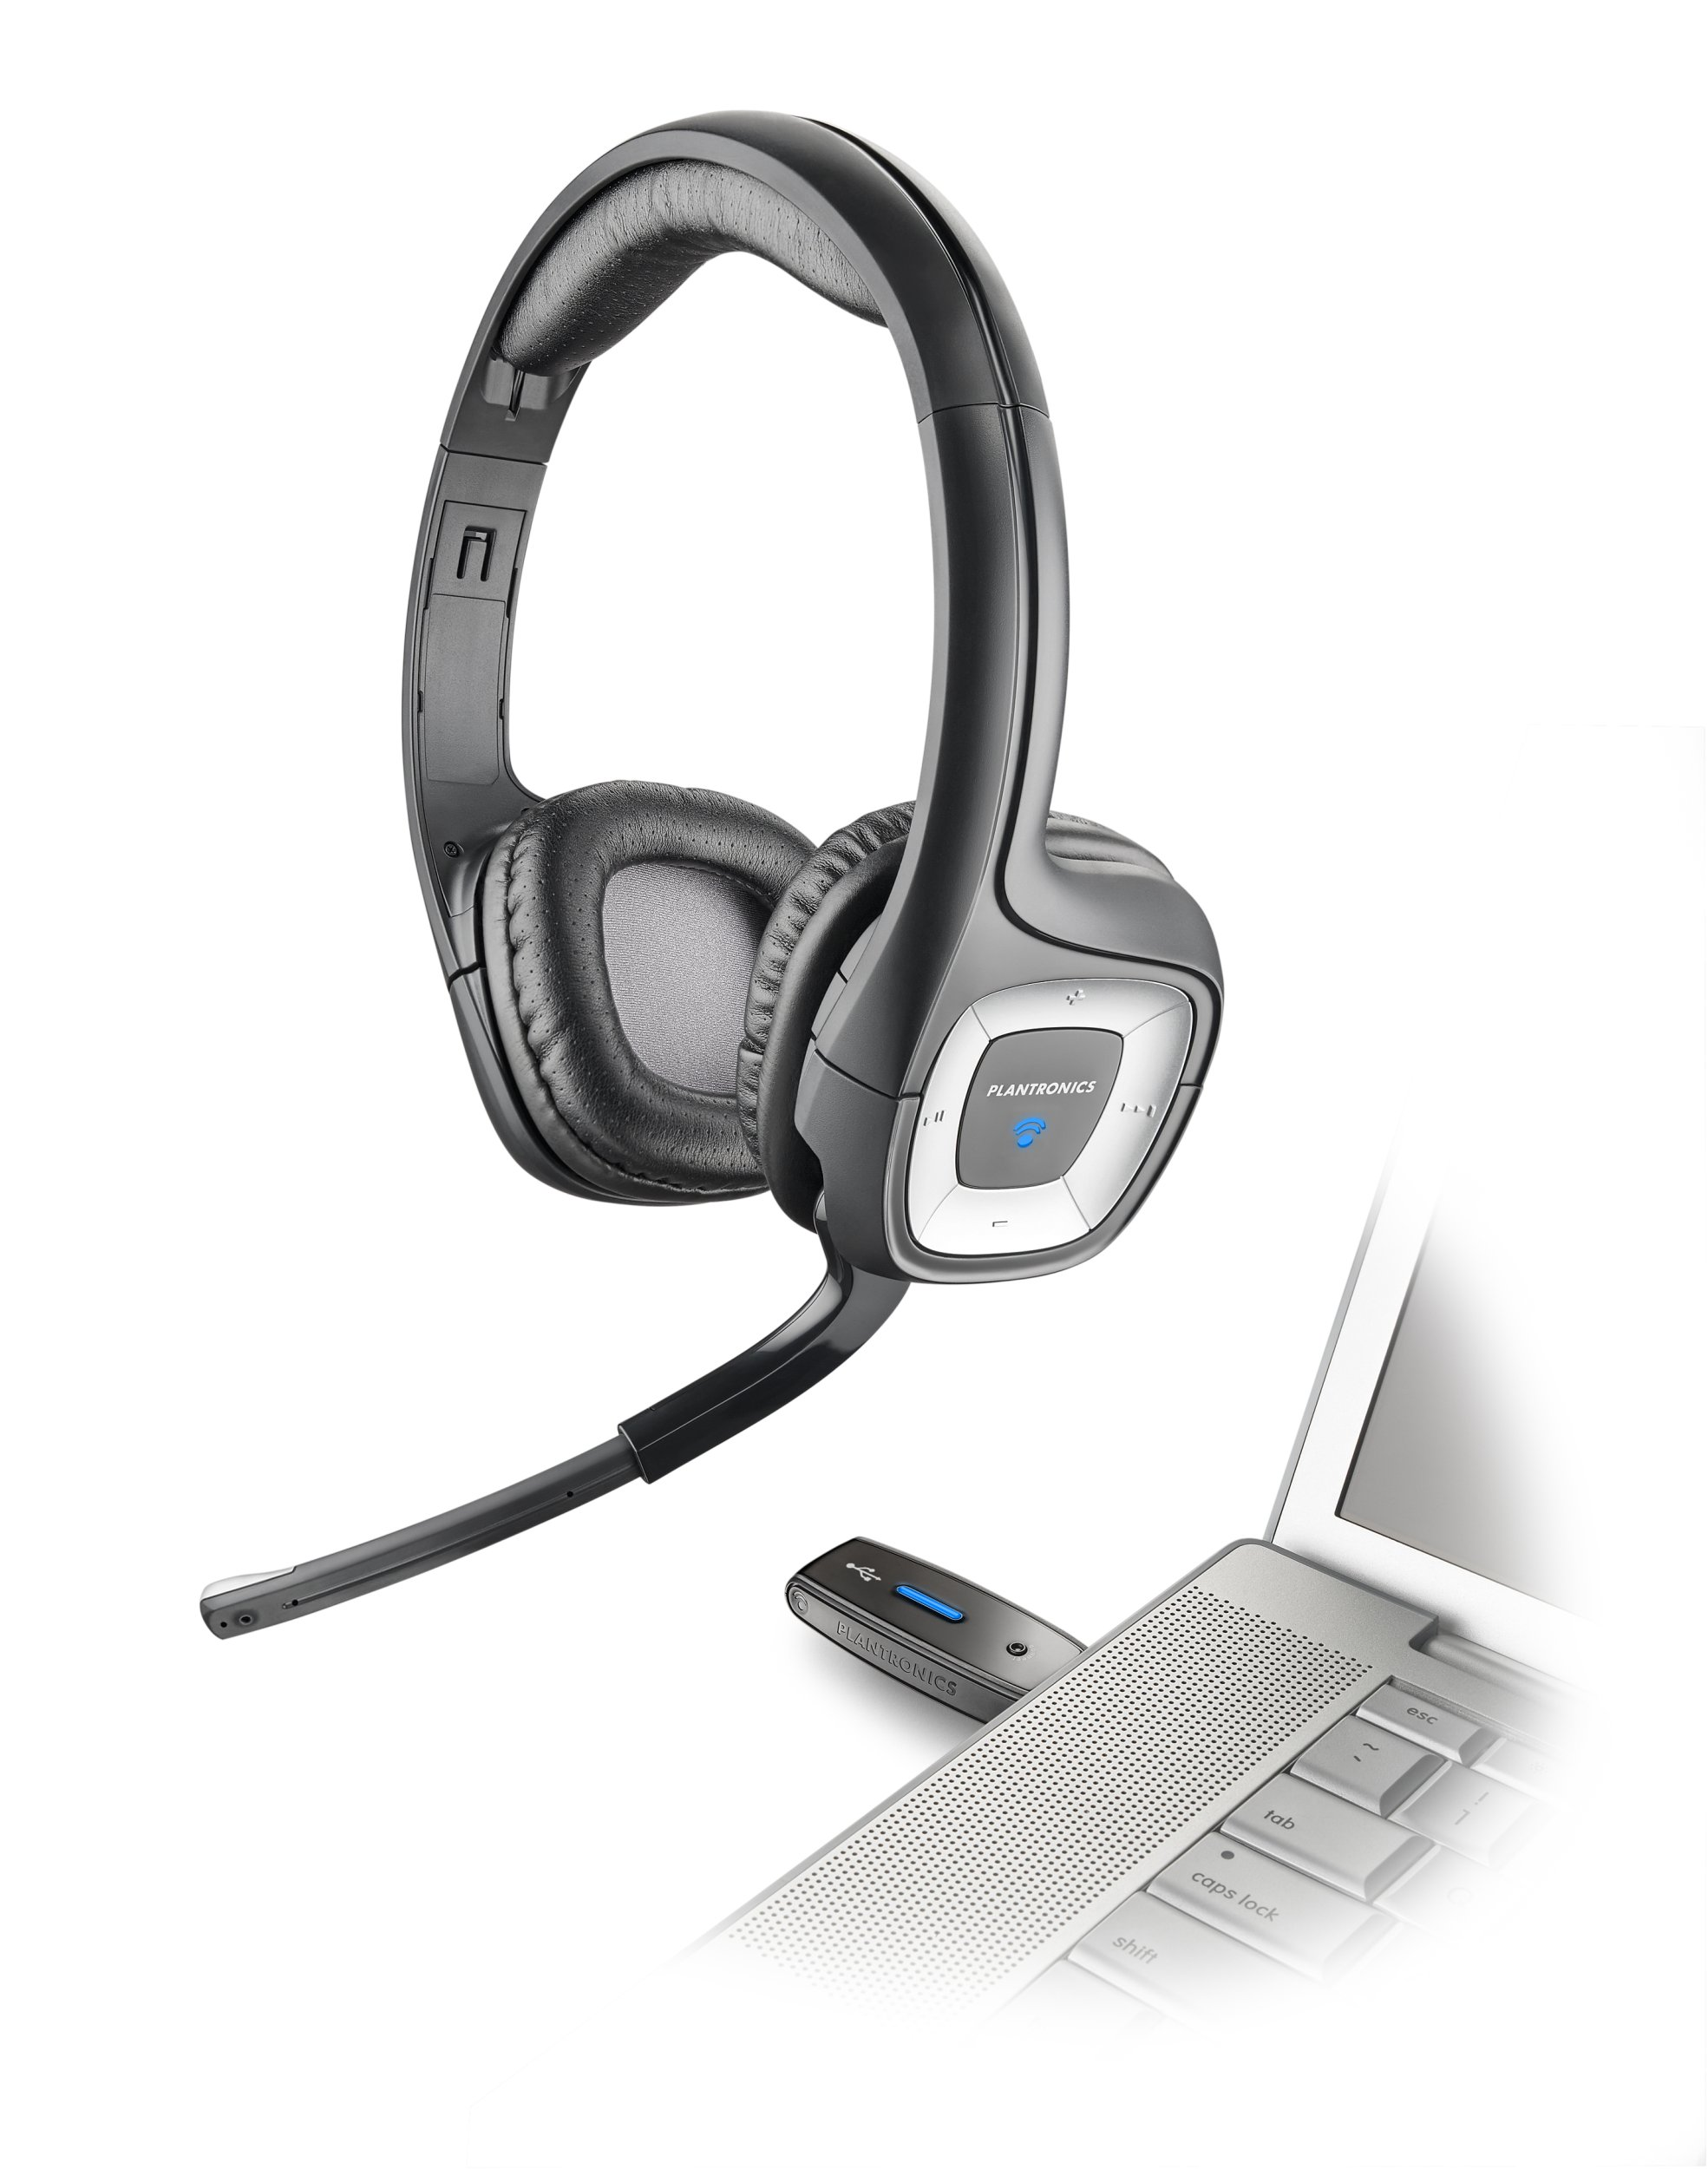 Plantronics Audio 995 USB Multimedia Headset with Noise Canceling Microphone - Compatible with PC and Mac by Plantronics